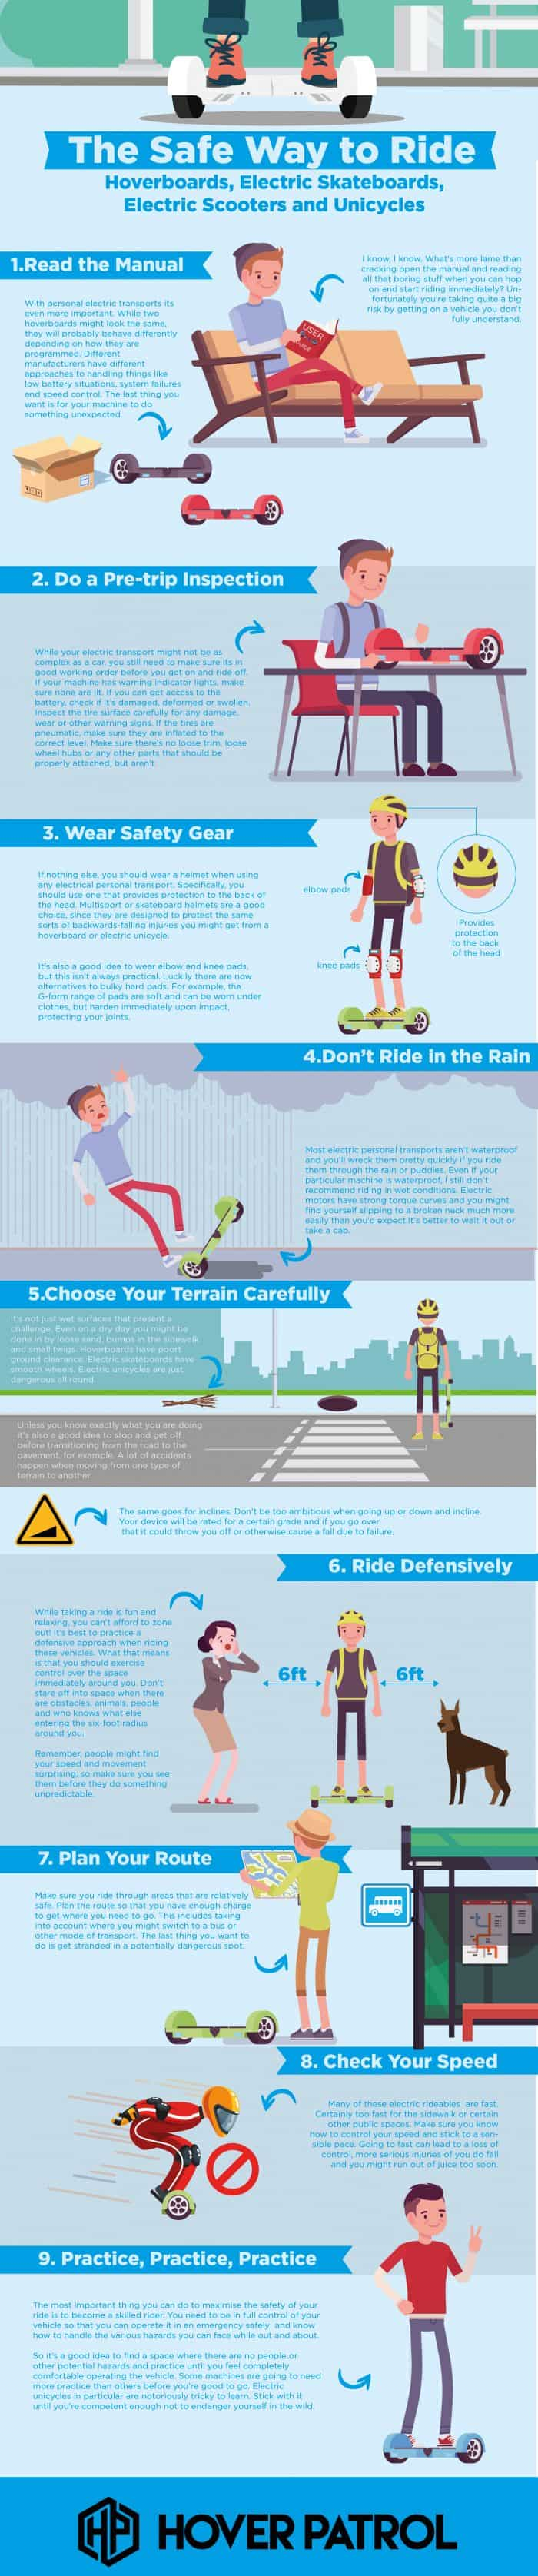 infographic describes safe way to ride hoverboards, electric transport